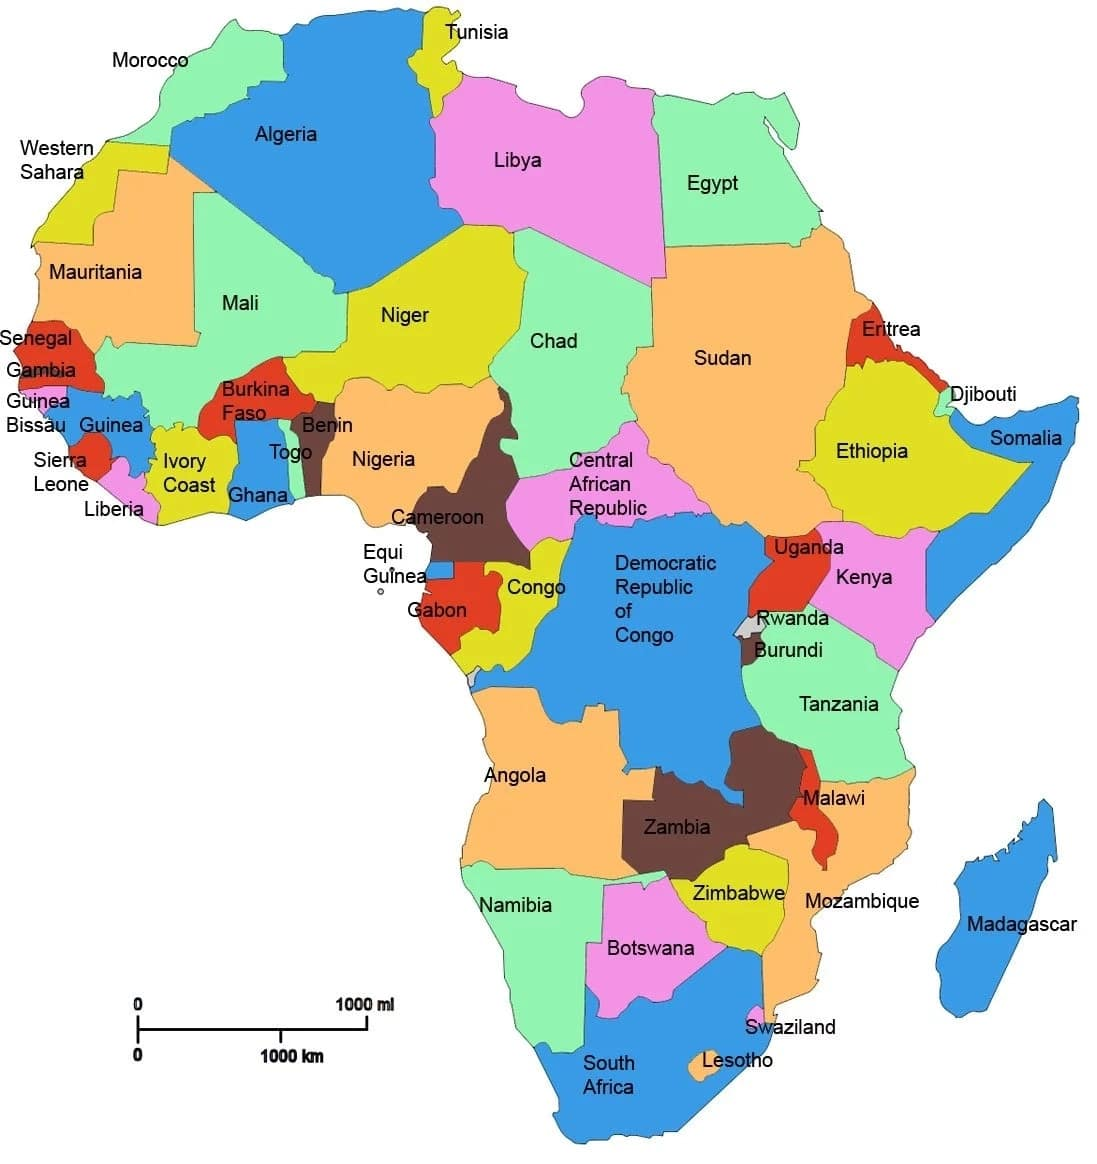 Richest countries in Africa, Top 10 richest countries in Africa, Top richest countries in Africa